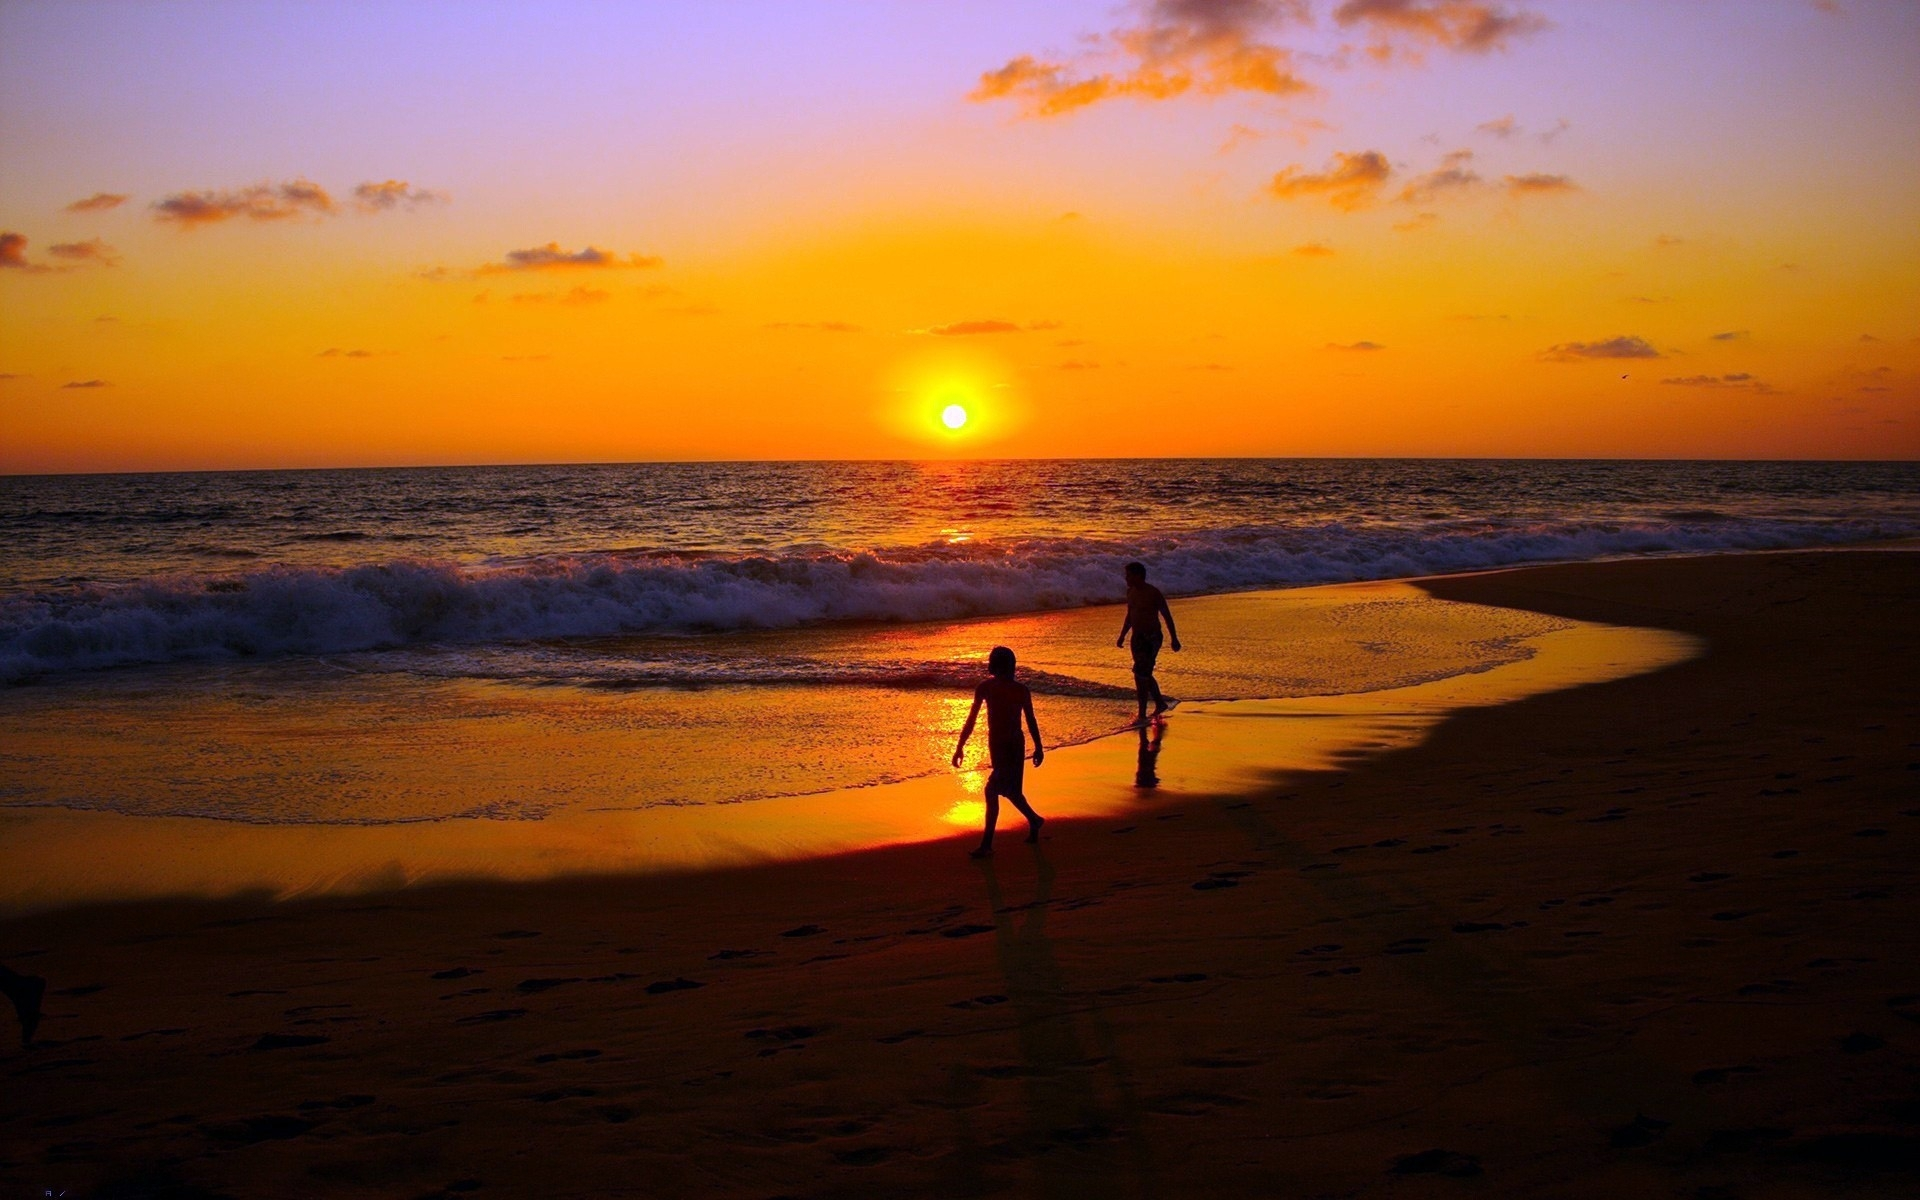 sea_sunset_couple_walk_sand_44477_1920x1200